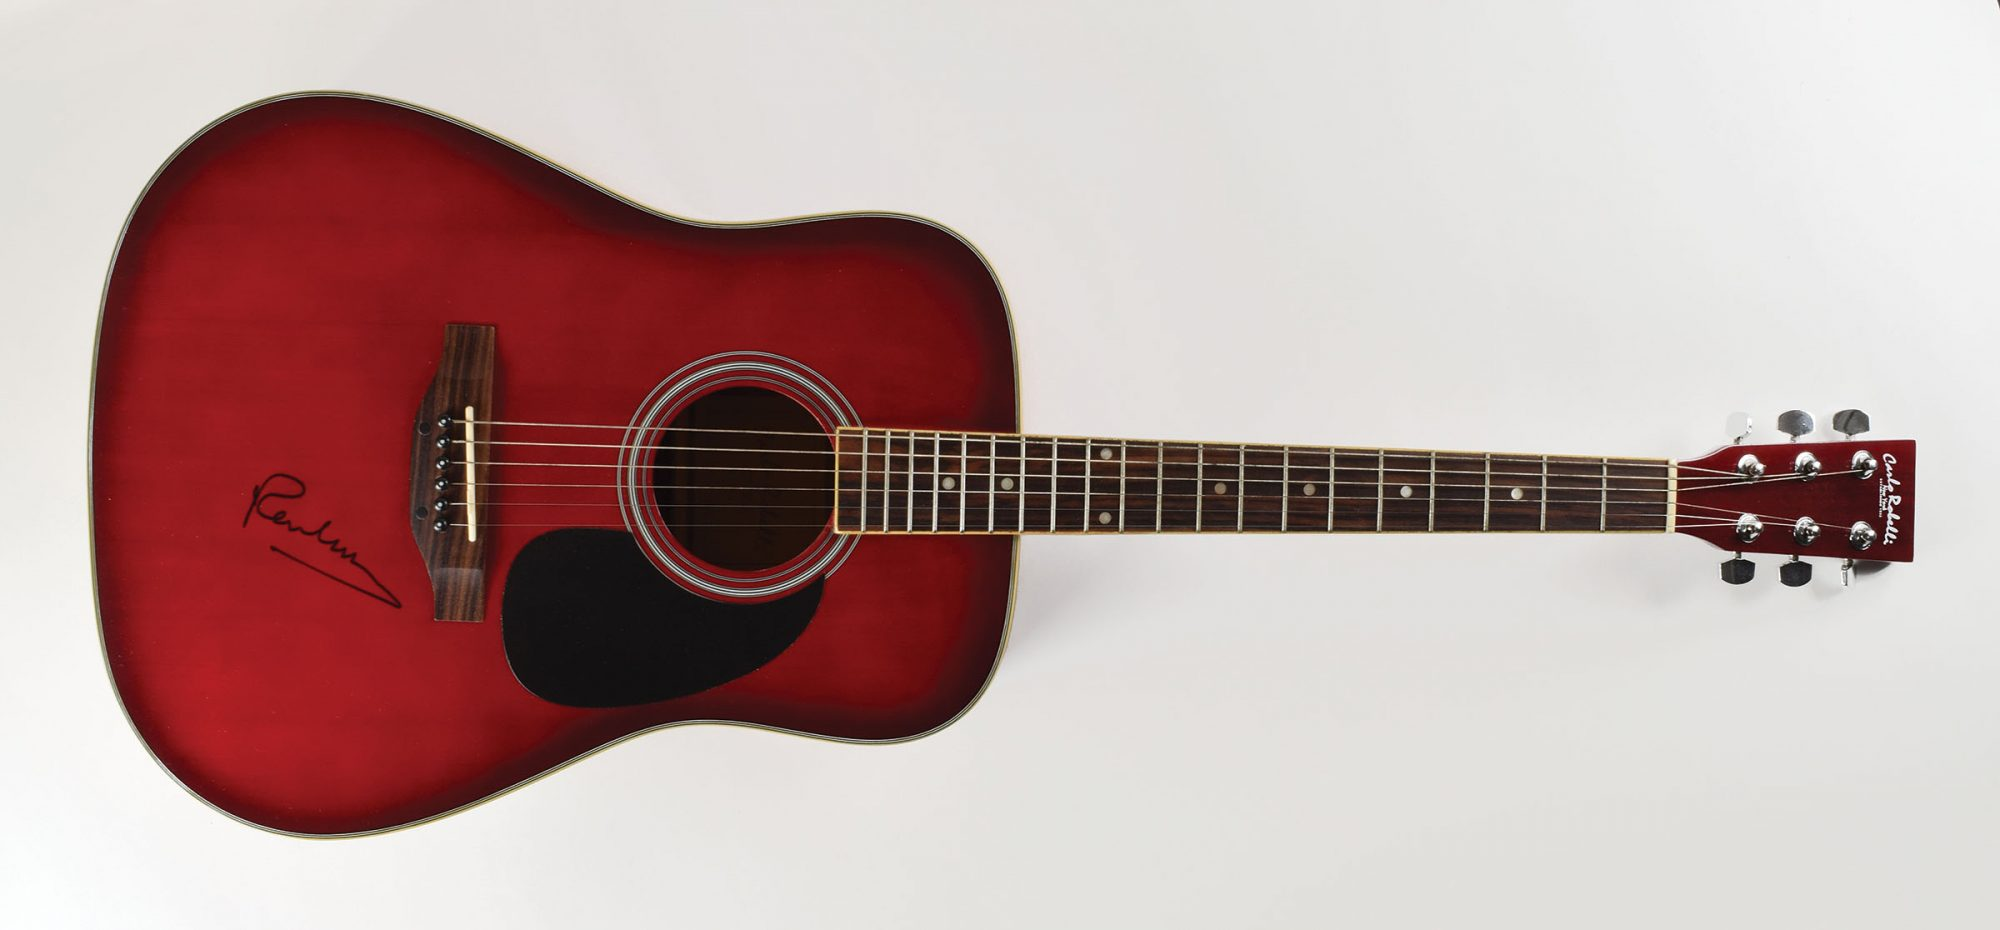 Beatles autograph Carlo Robelli acoustic guitar red sunburst finish Paul McCartney John Brennan Collection RR Auction